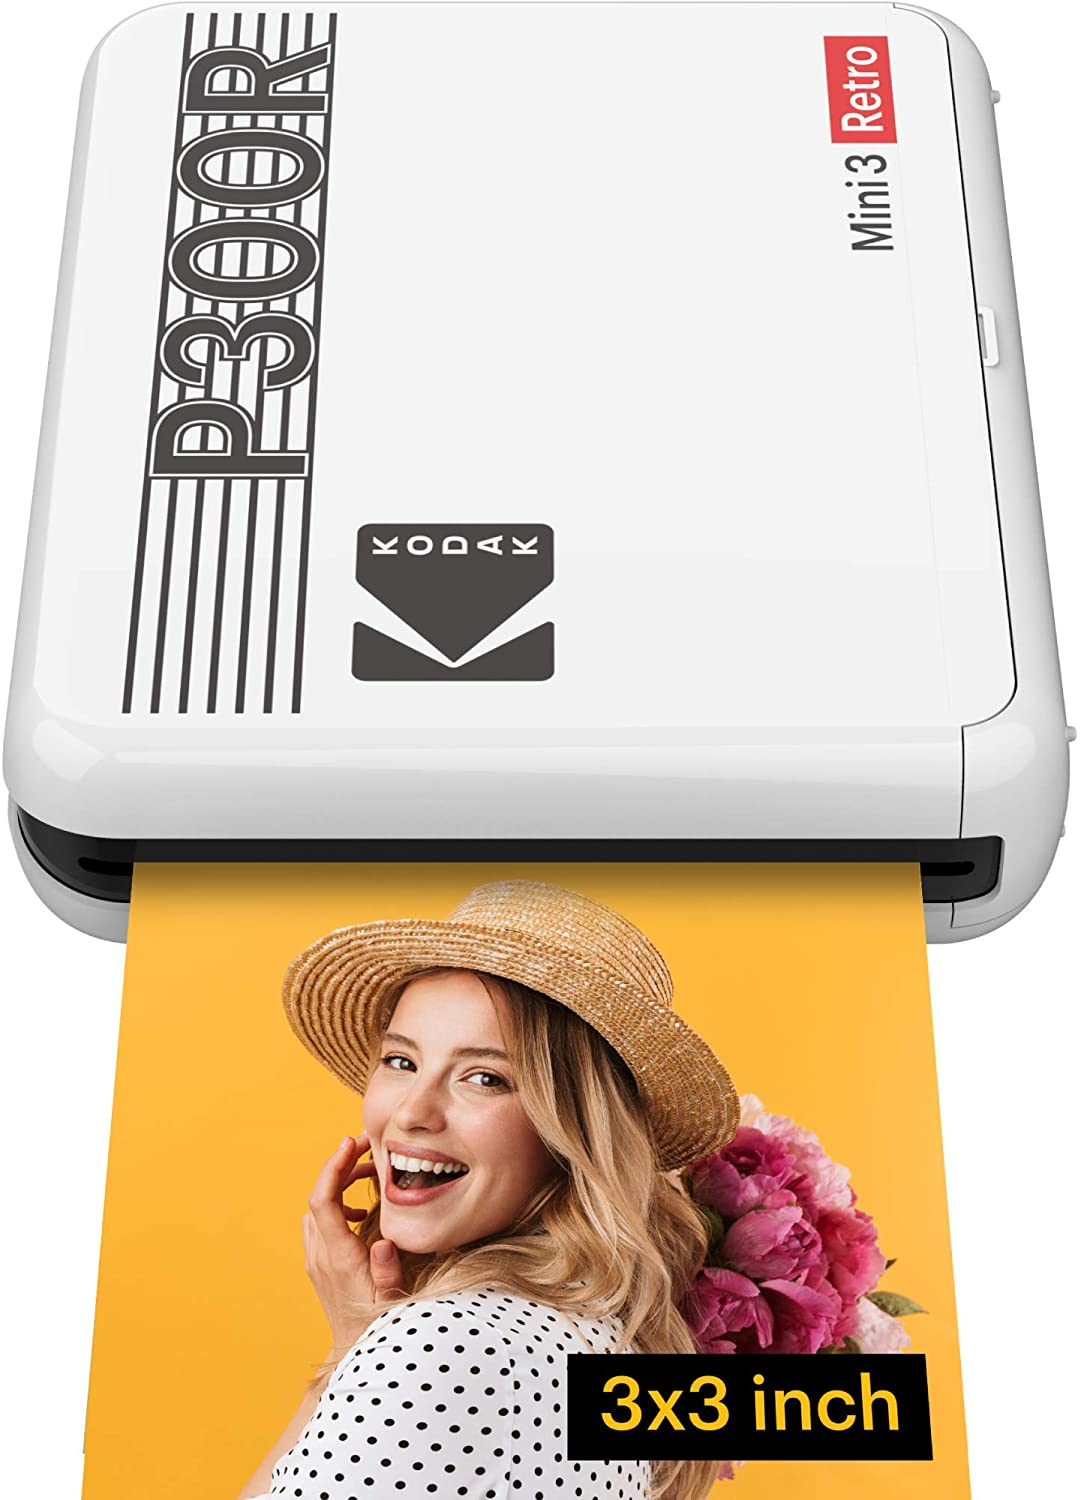 kodak mini 3 retro, best phone photo printers 2021